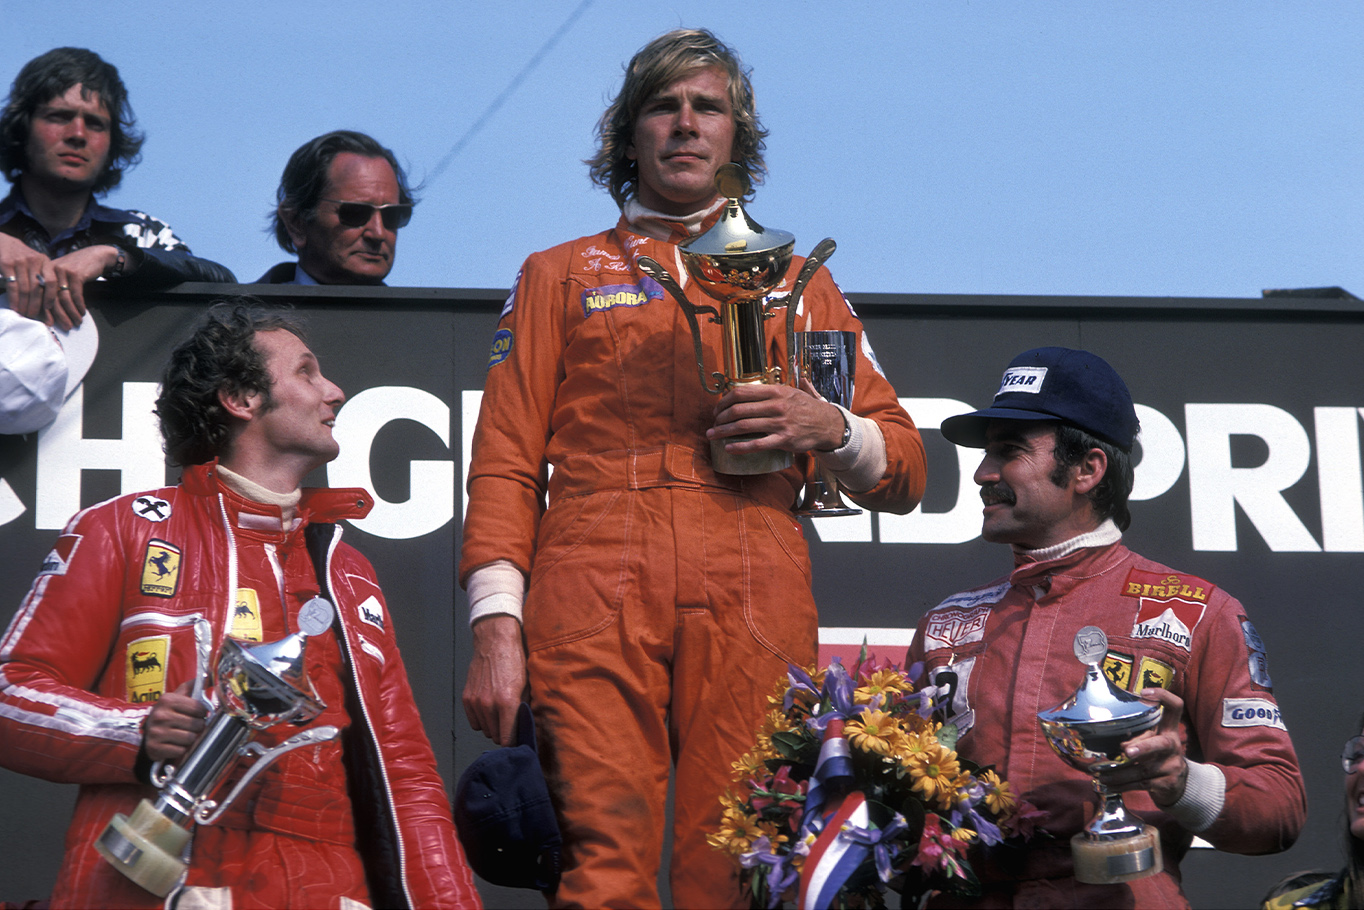 James Hunt on the top step of the podium for Hesketh Racing after winning the 1975 Dutch Grand Prix at Zandvoort